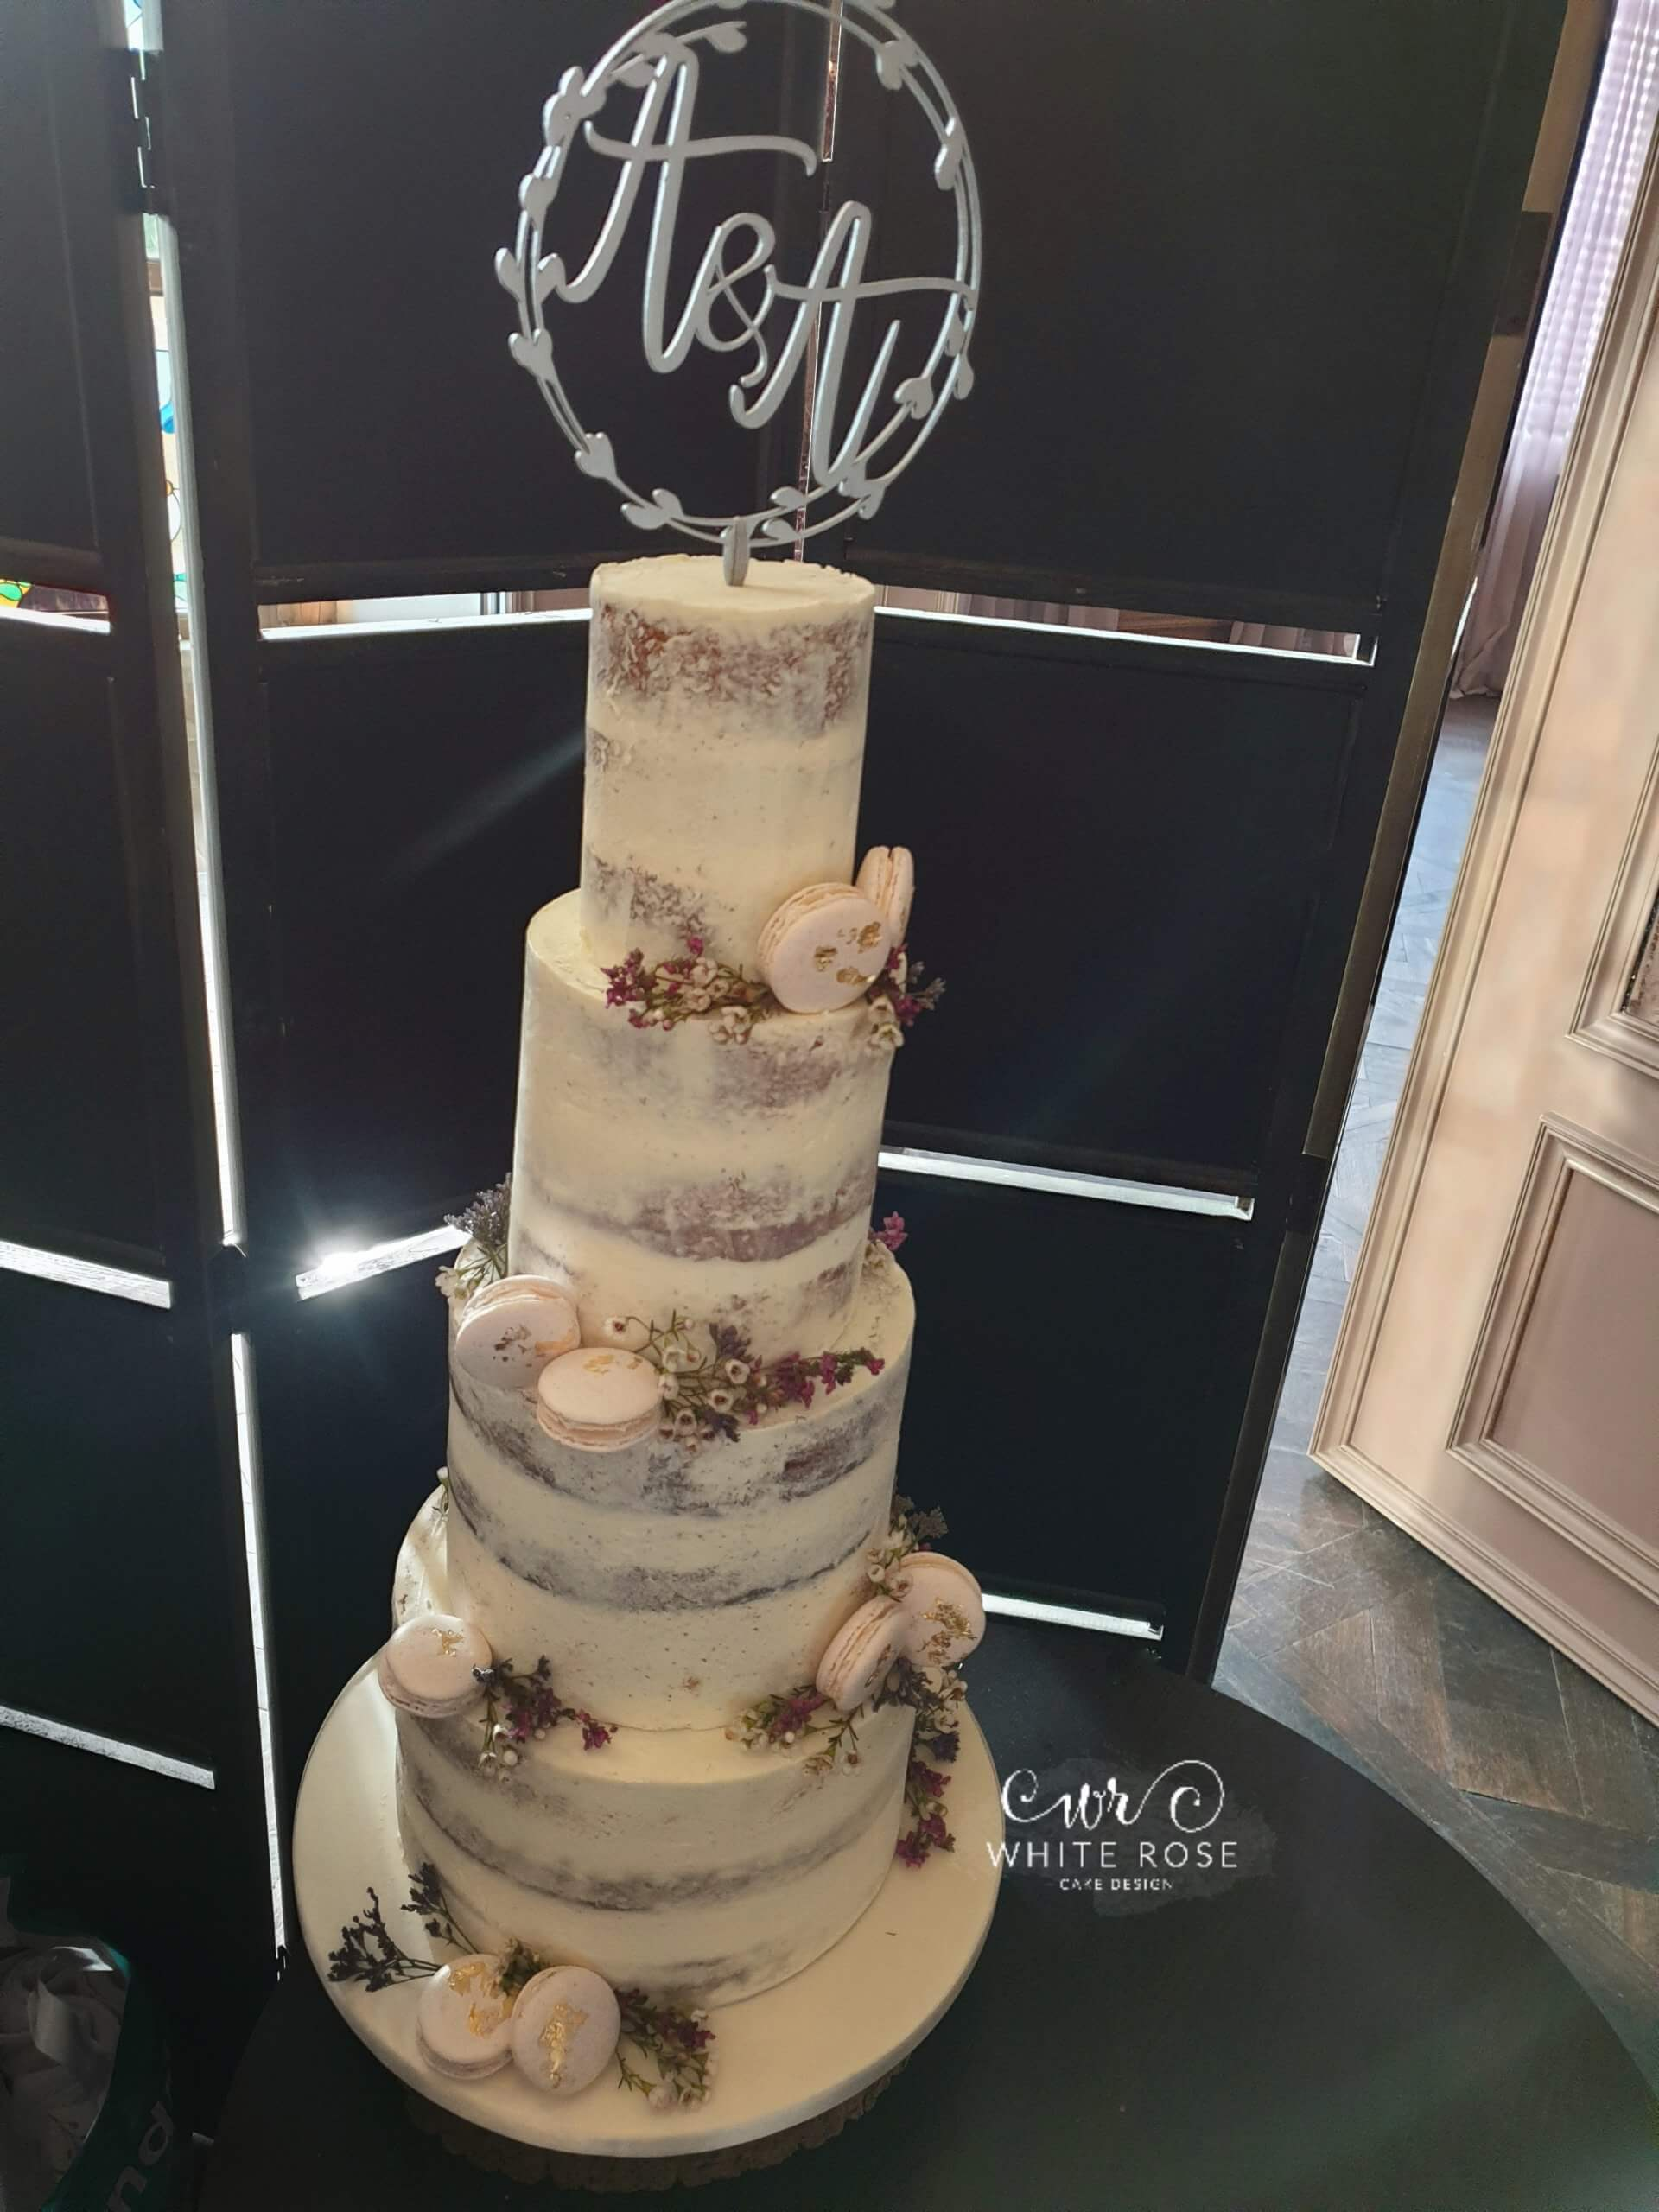 Semi-Naked Wedding Cake with Dried Flowers and Pink Macarons at Manor House Lindley by White Rose Cake Design in Holmfirth (3)